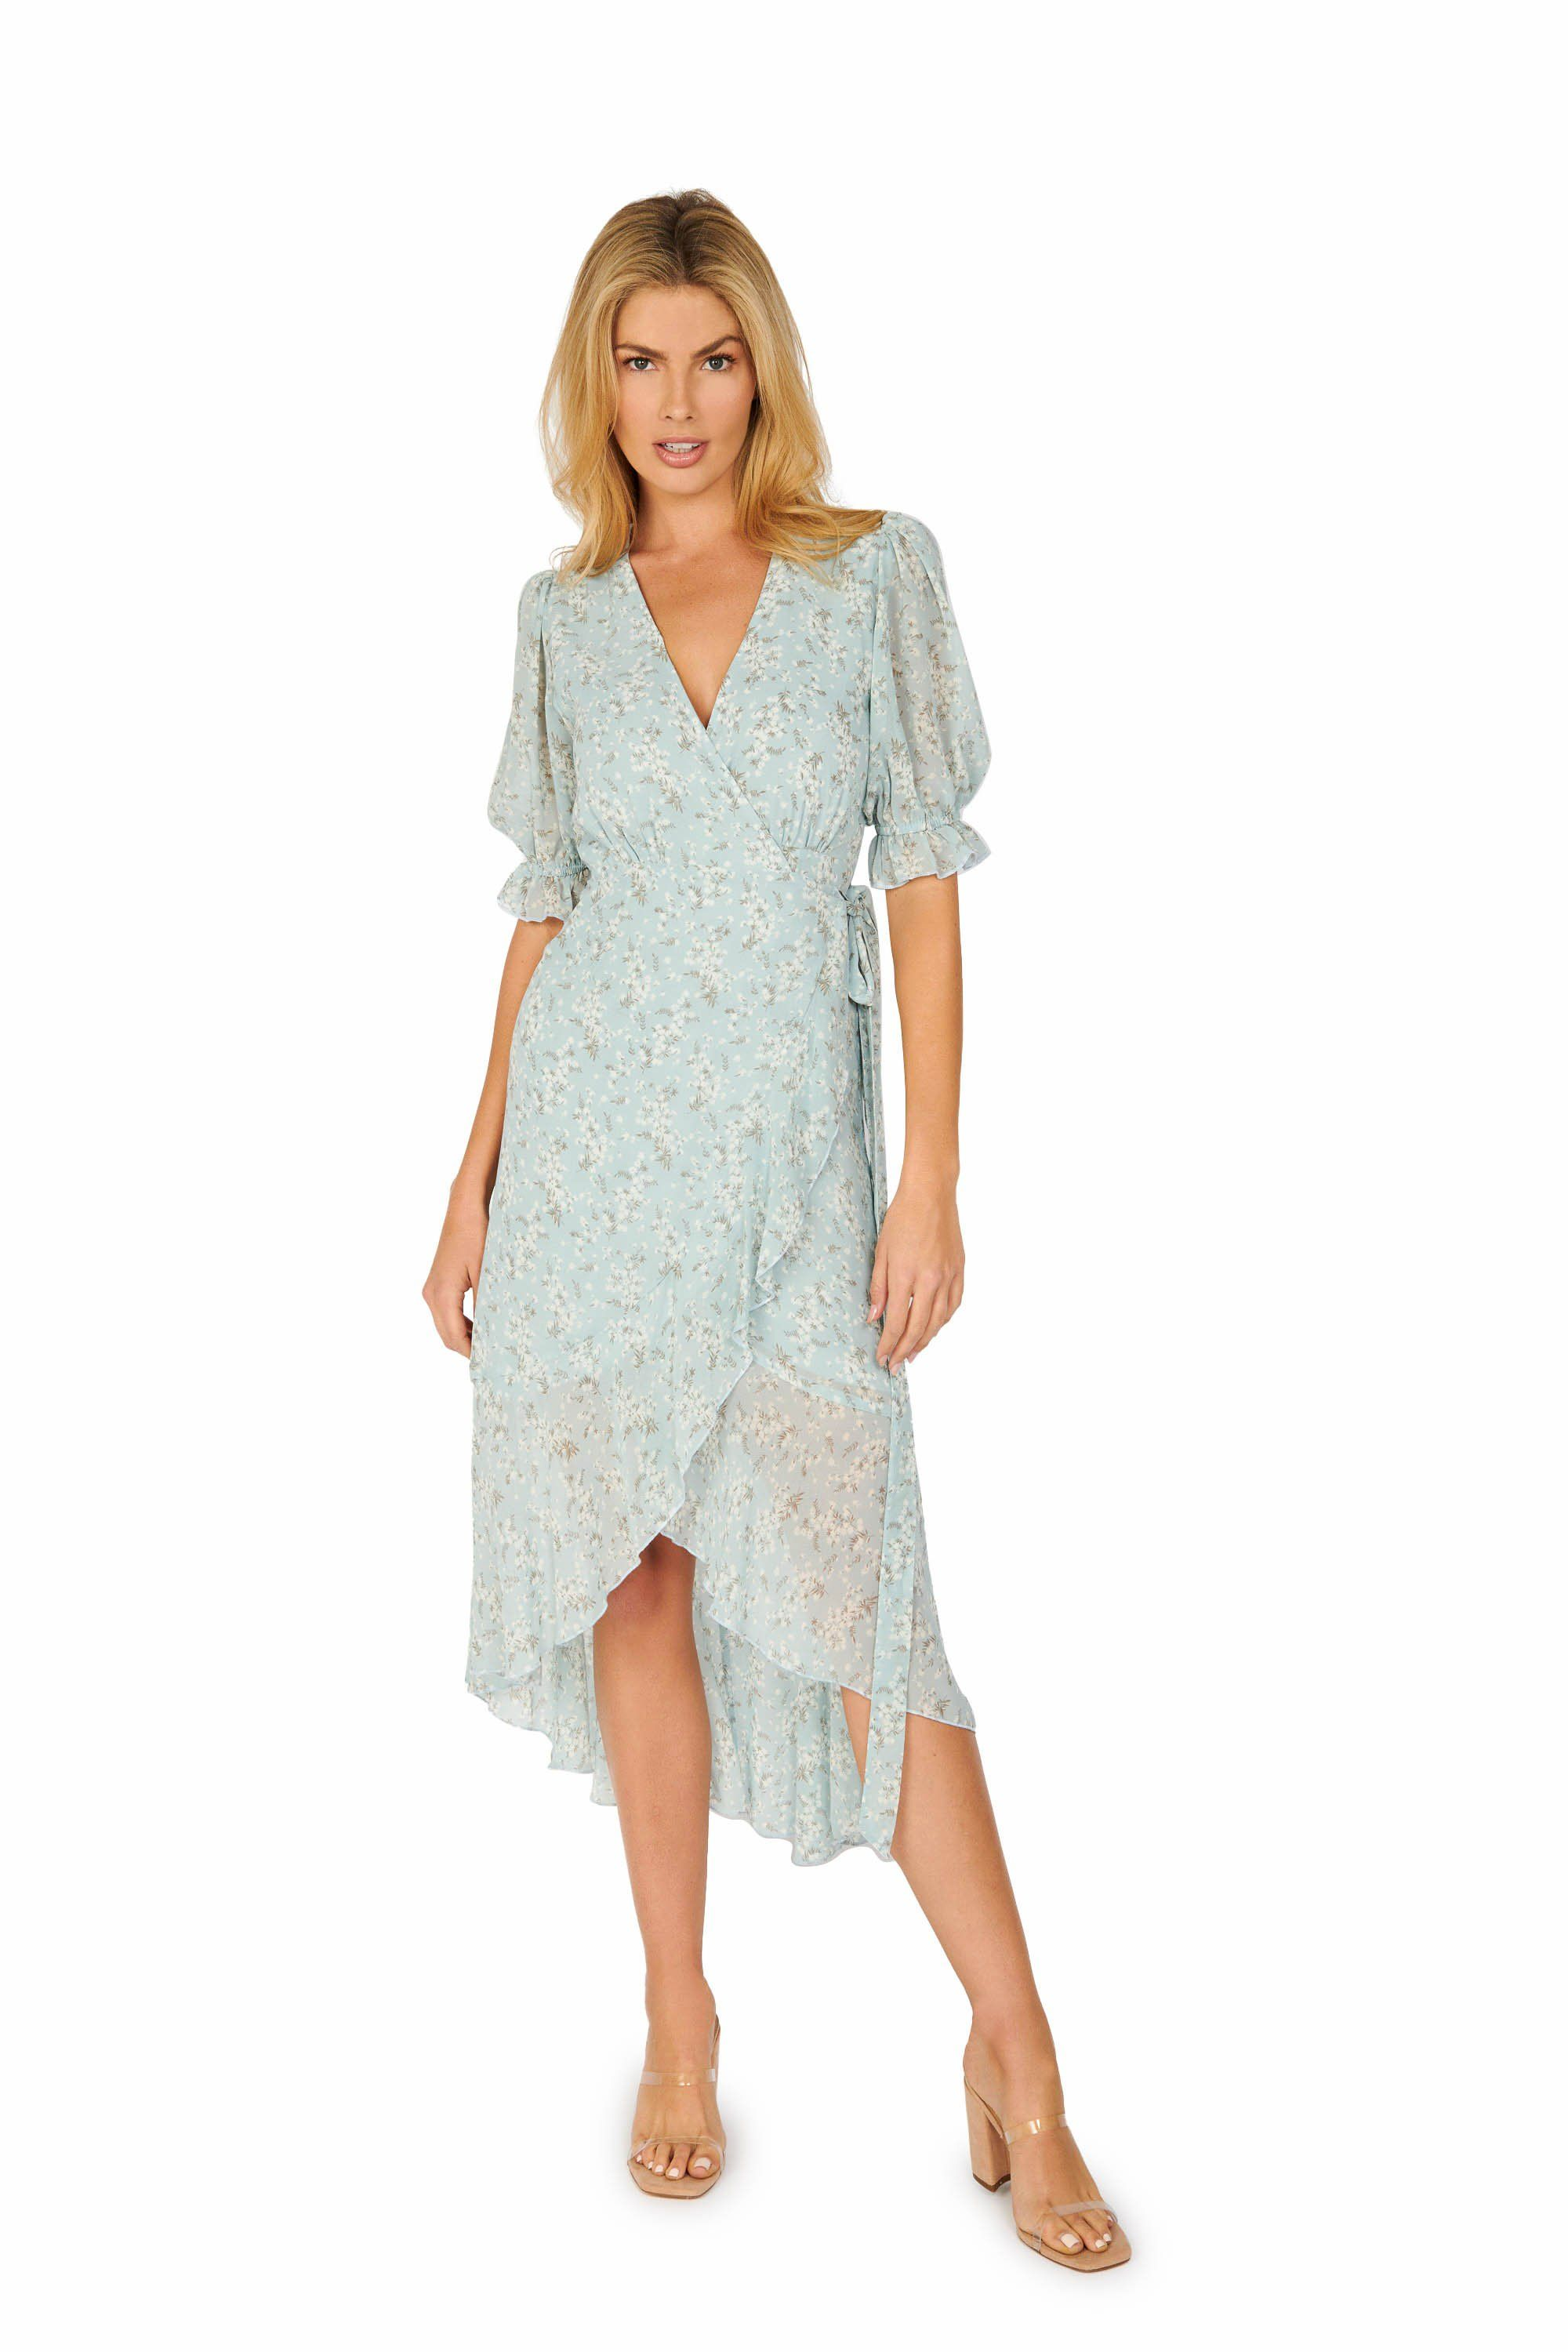 Floral Midi Wrap Dress Light Blue Dresses HYPEACH BOUTIQUE